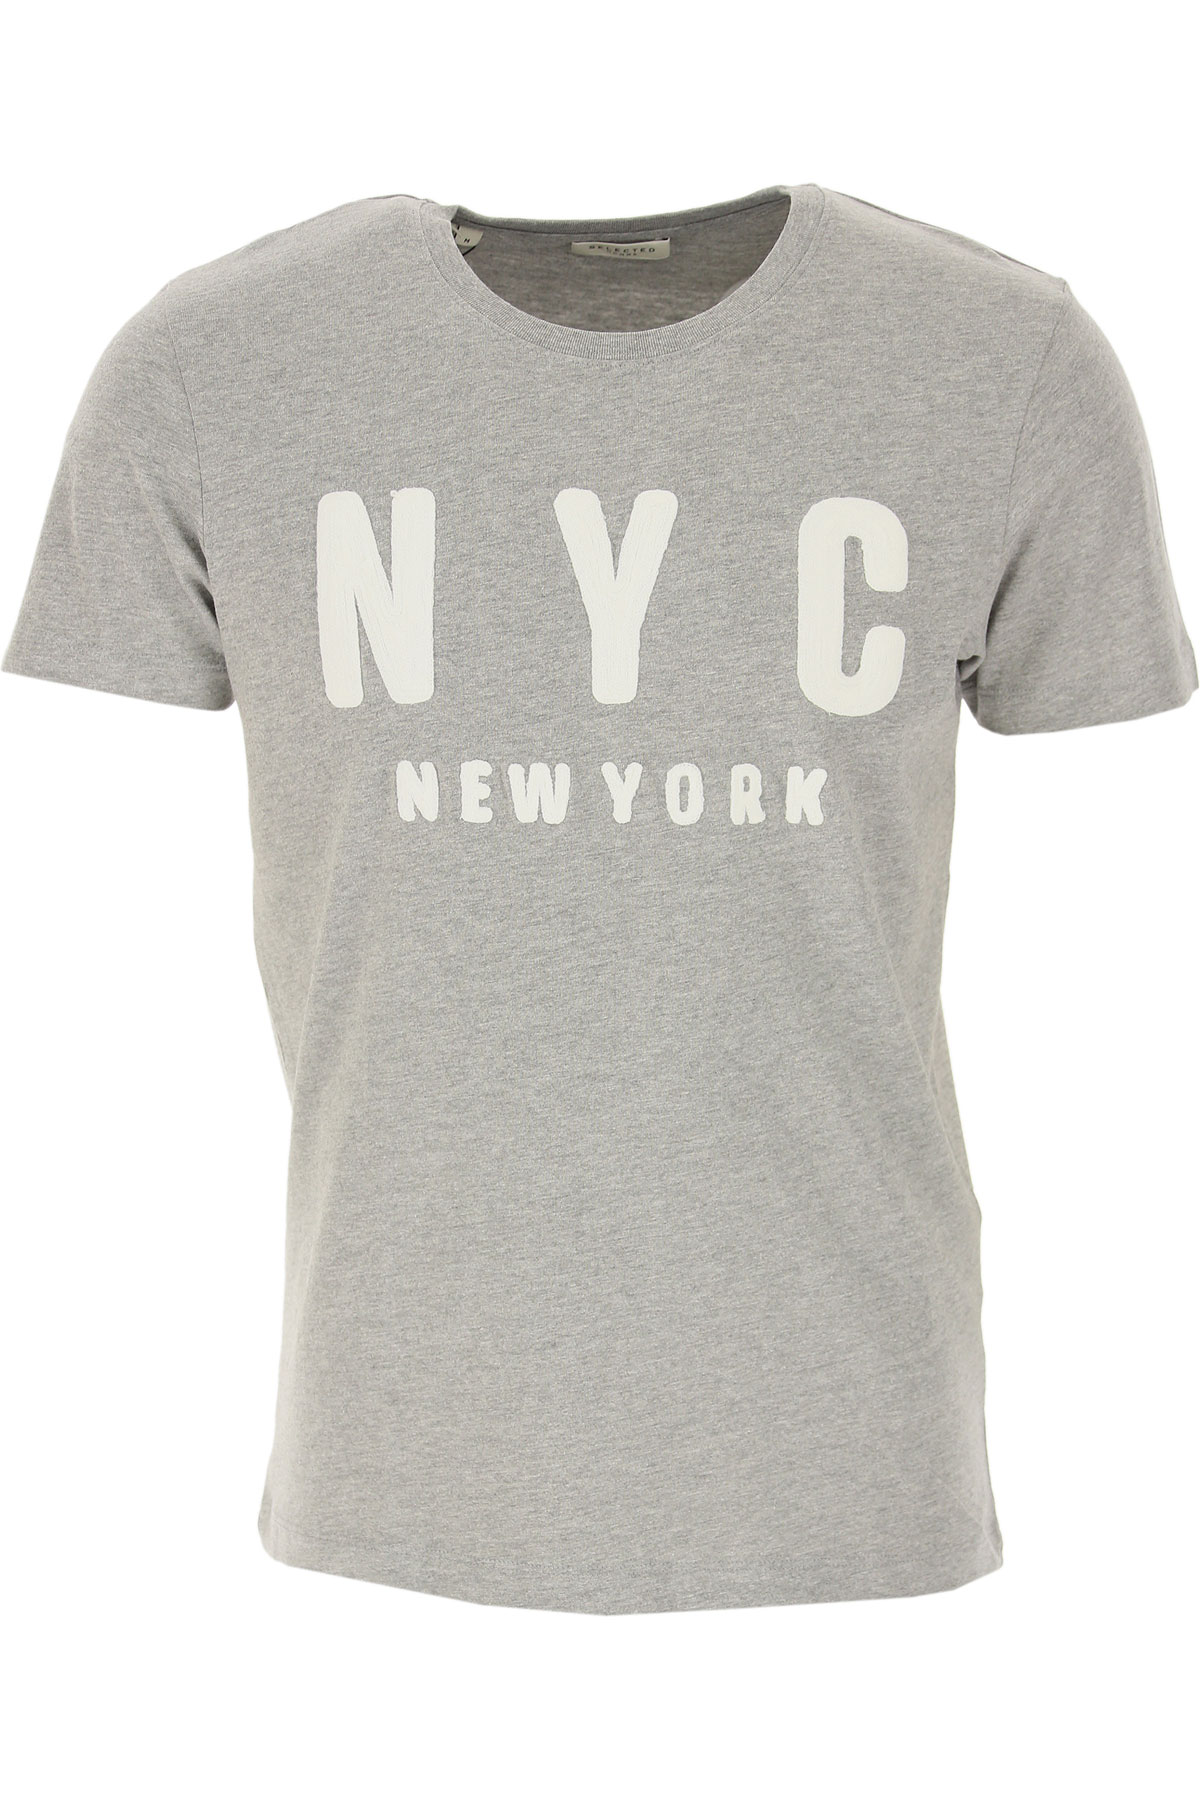 Selected T-Shirt for Men On Sale, Grey, Cotton, 2019, M S XL